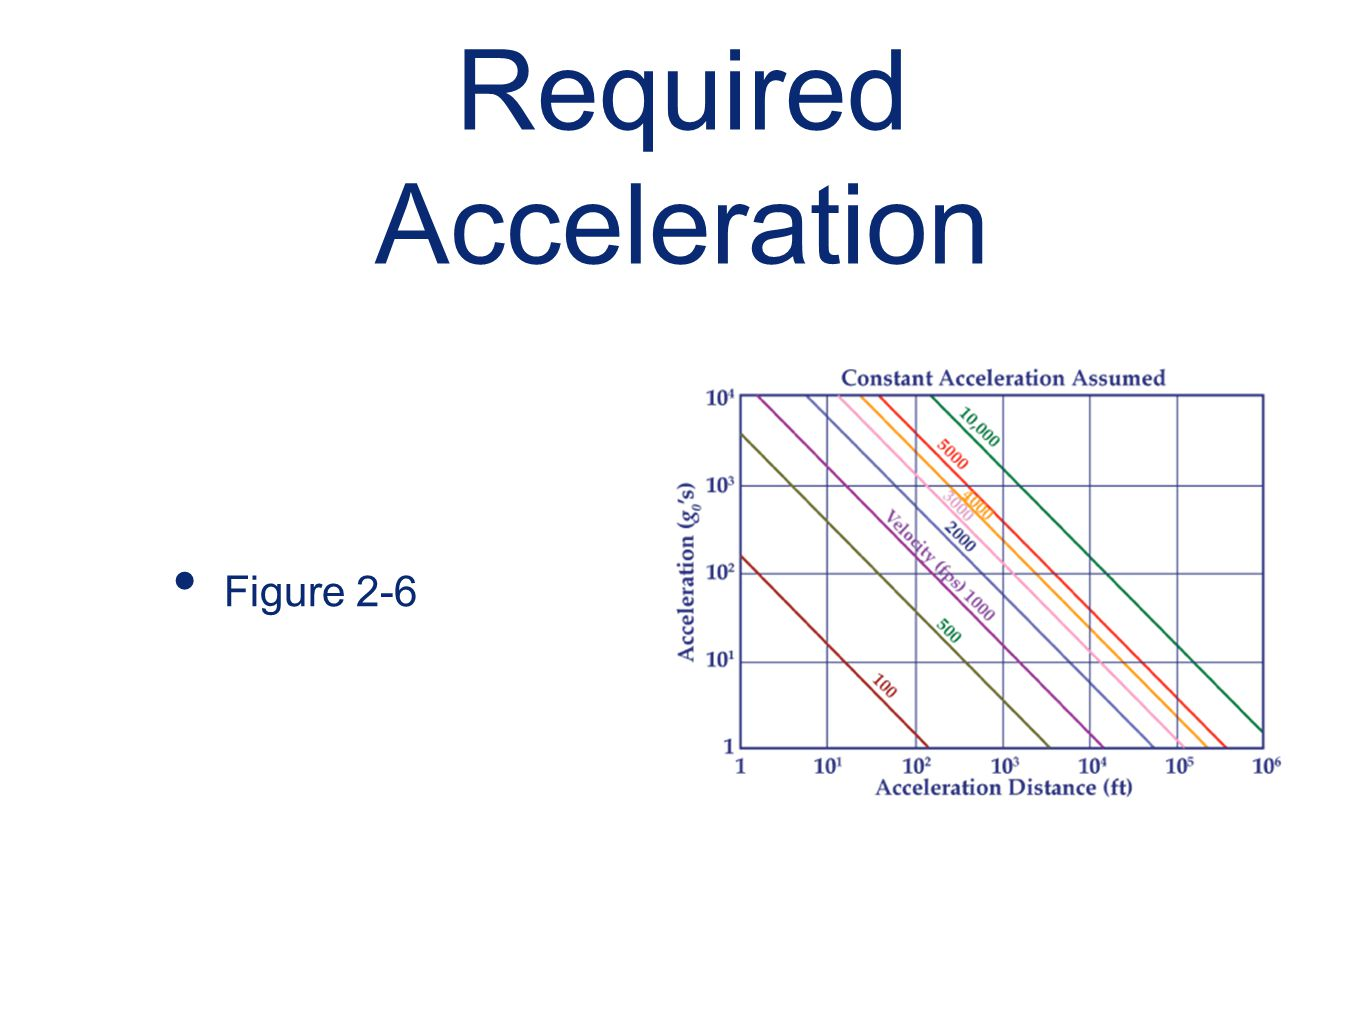 Required Acceleration